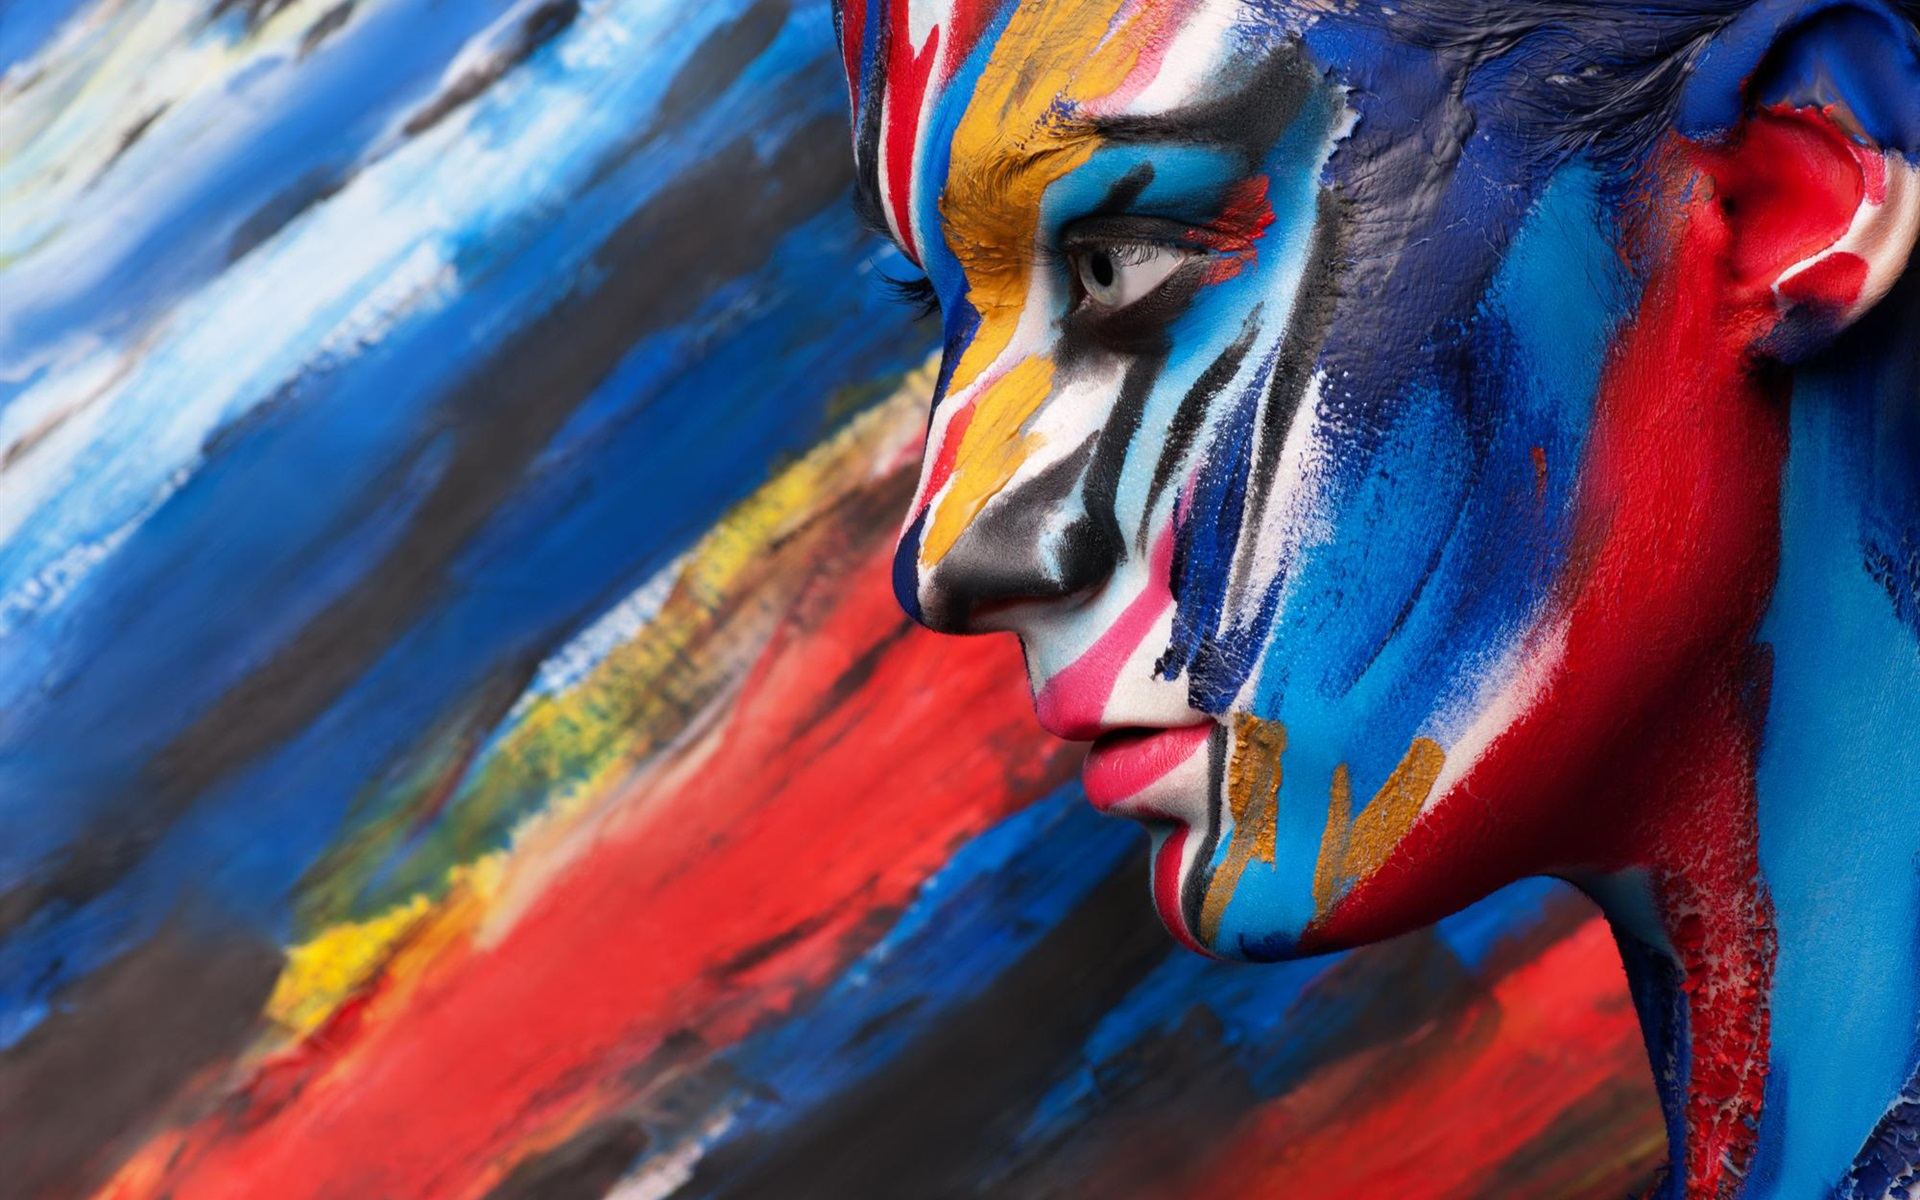 Wallpaper Body Art Paint Colorful Face Side View 1920x1200 Hd Picture Image